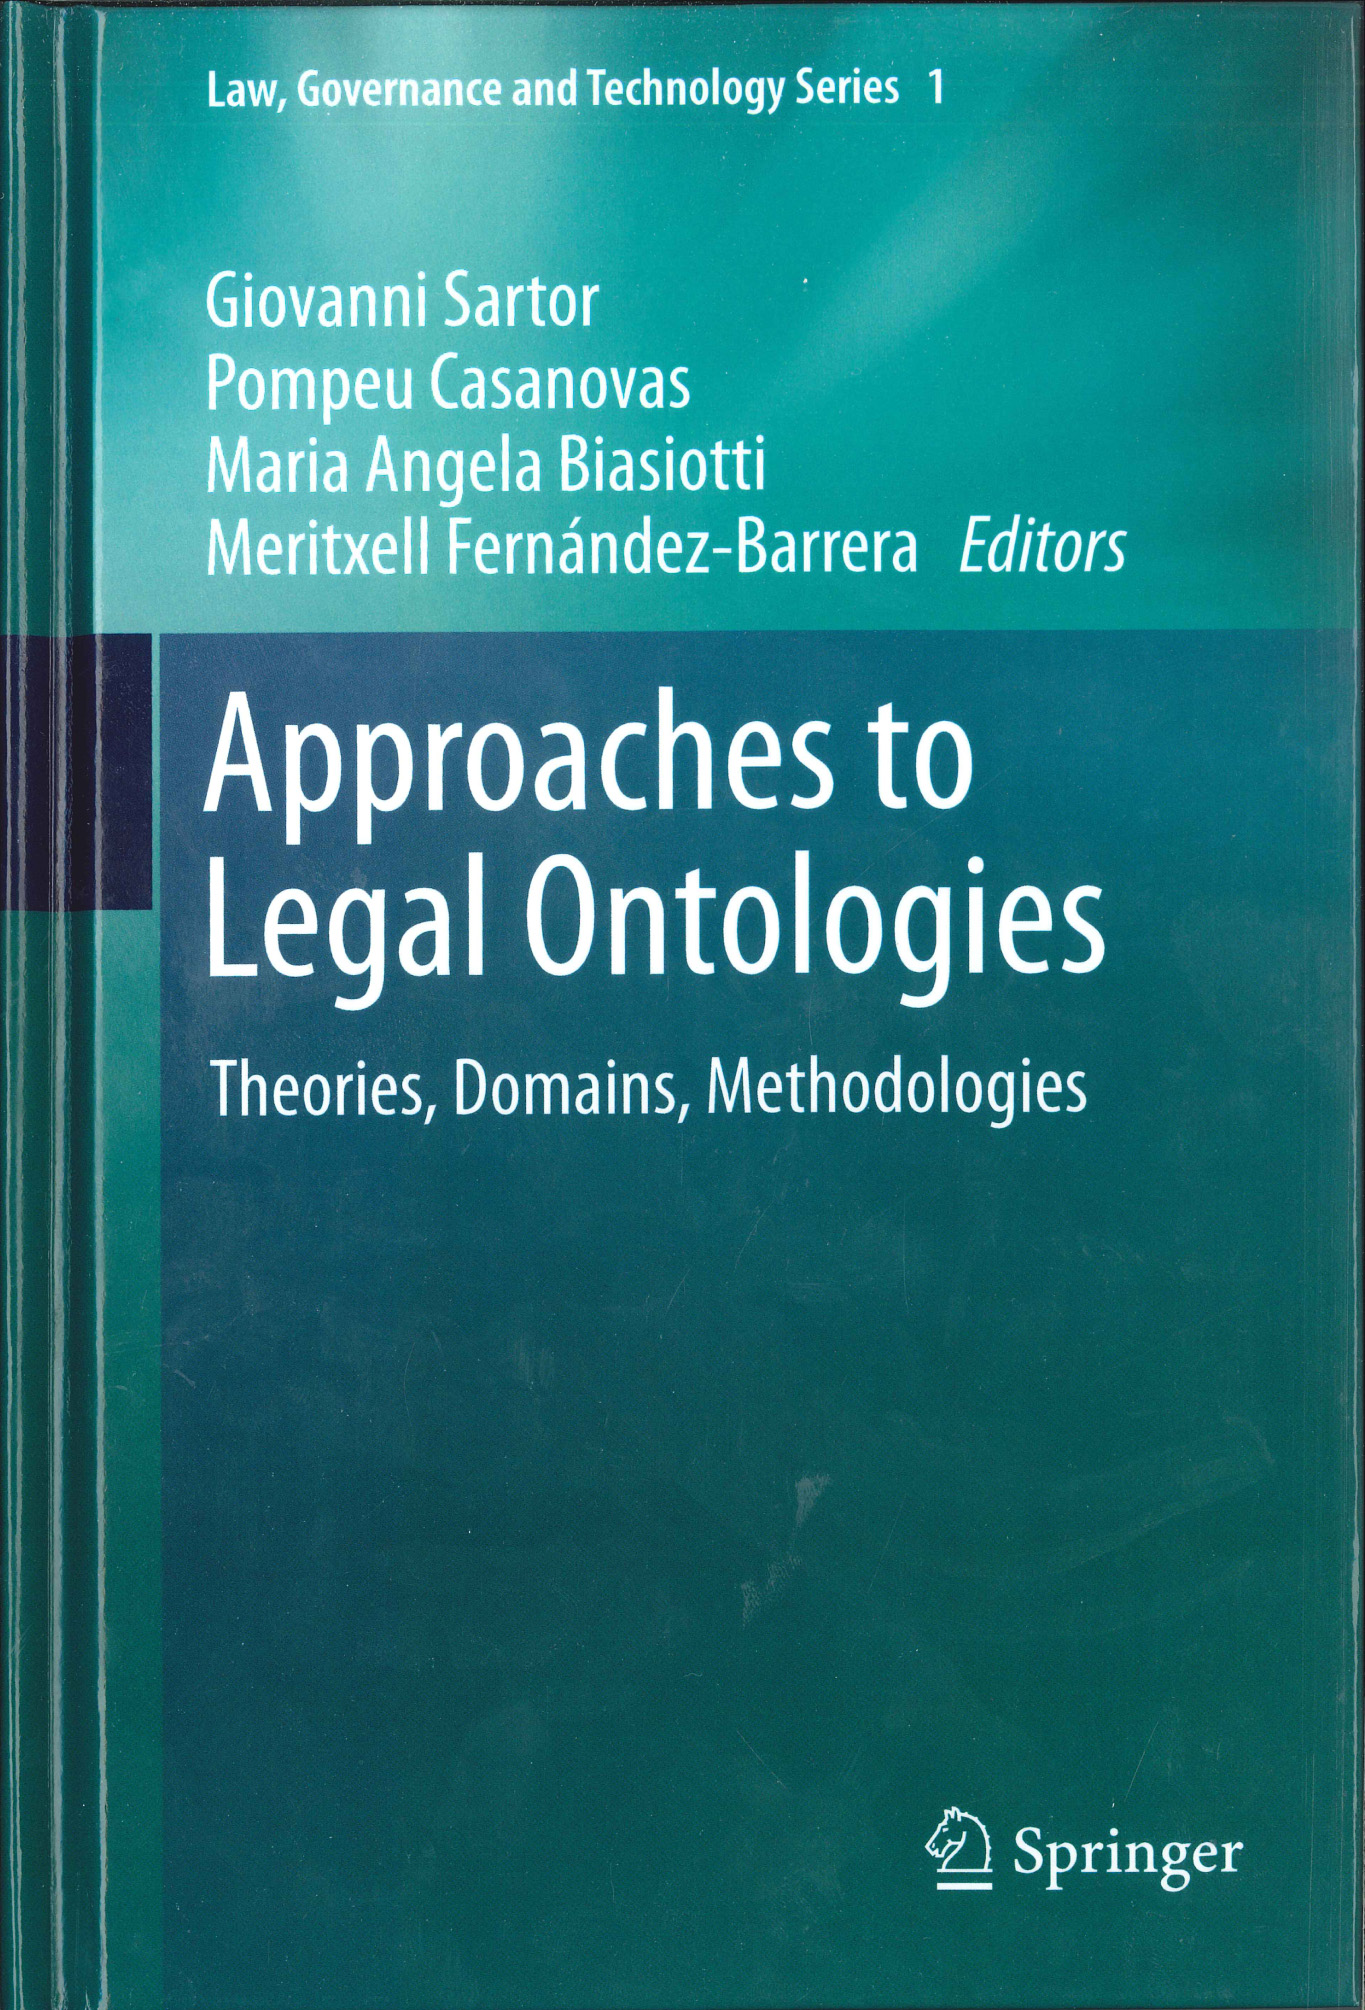 Approaches to Legal Ontologies: Theories, Domains, Methodologies